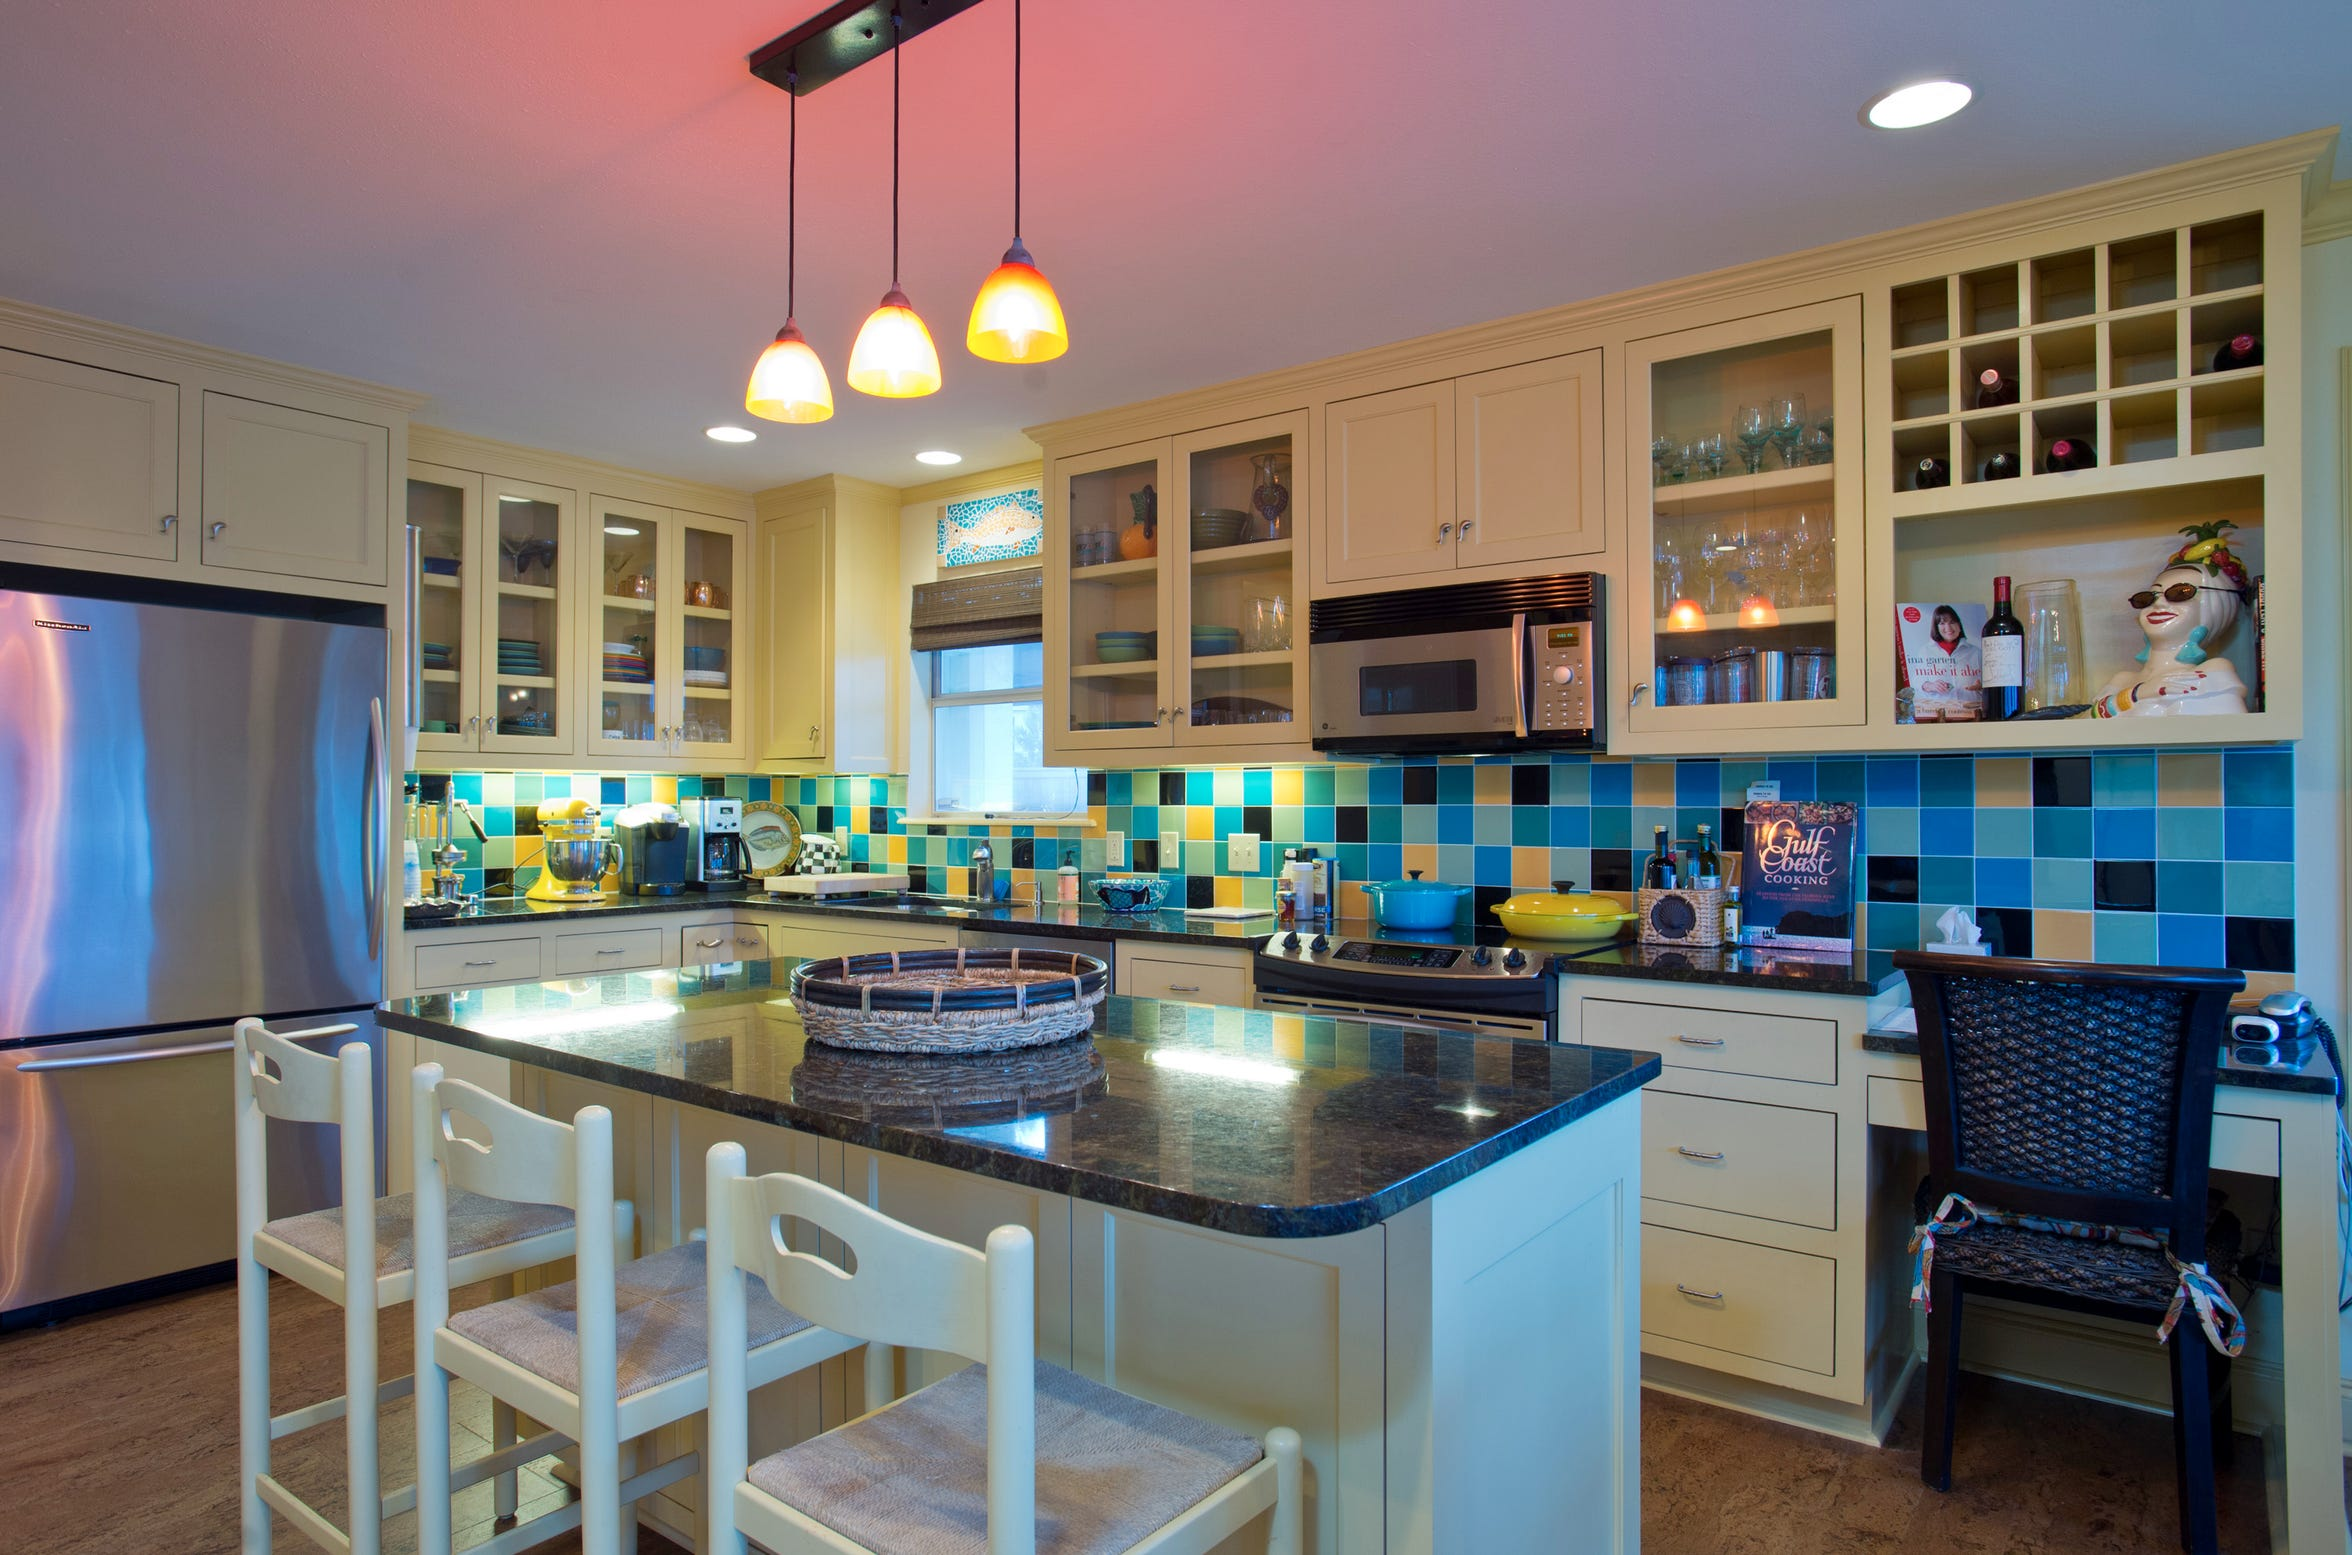 The kitchen is alive in color making it the perfect spot for entertaining while cooking up the catch of the day.